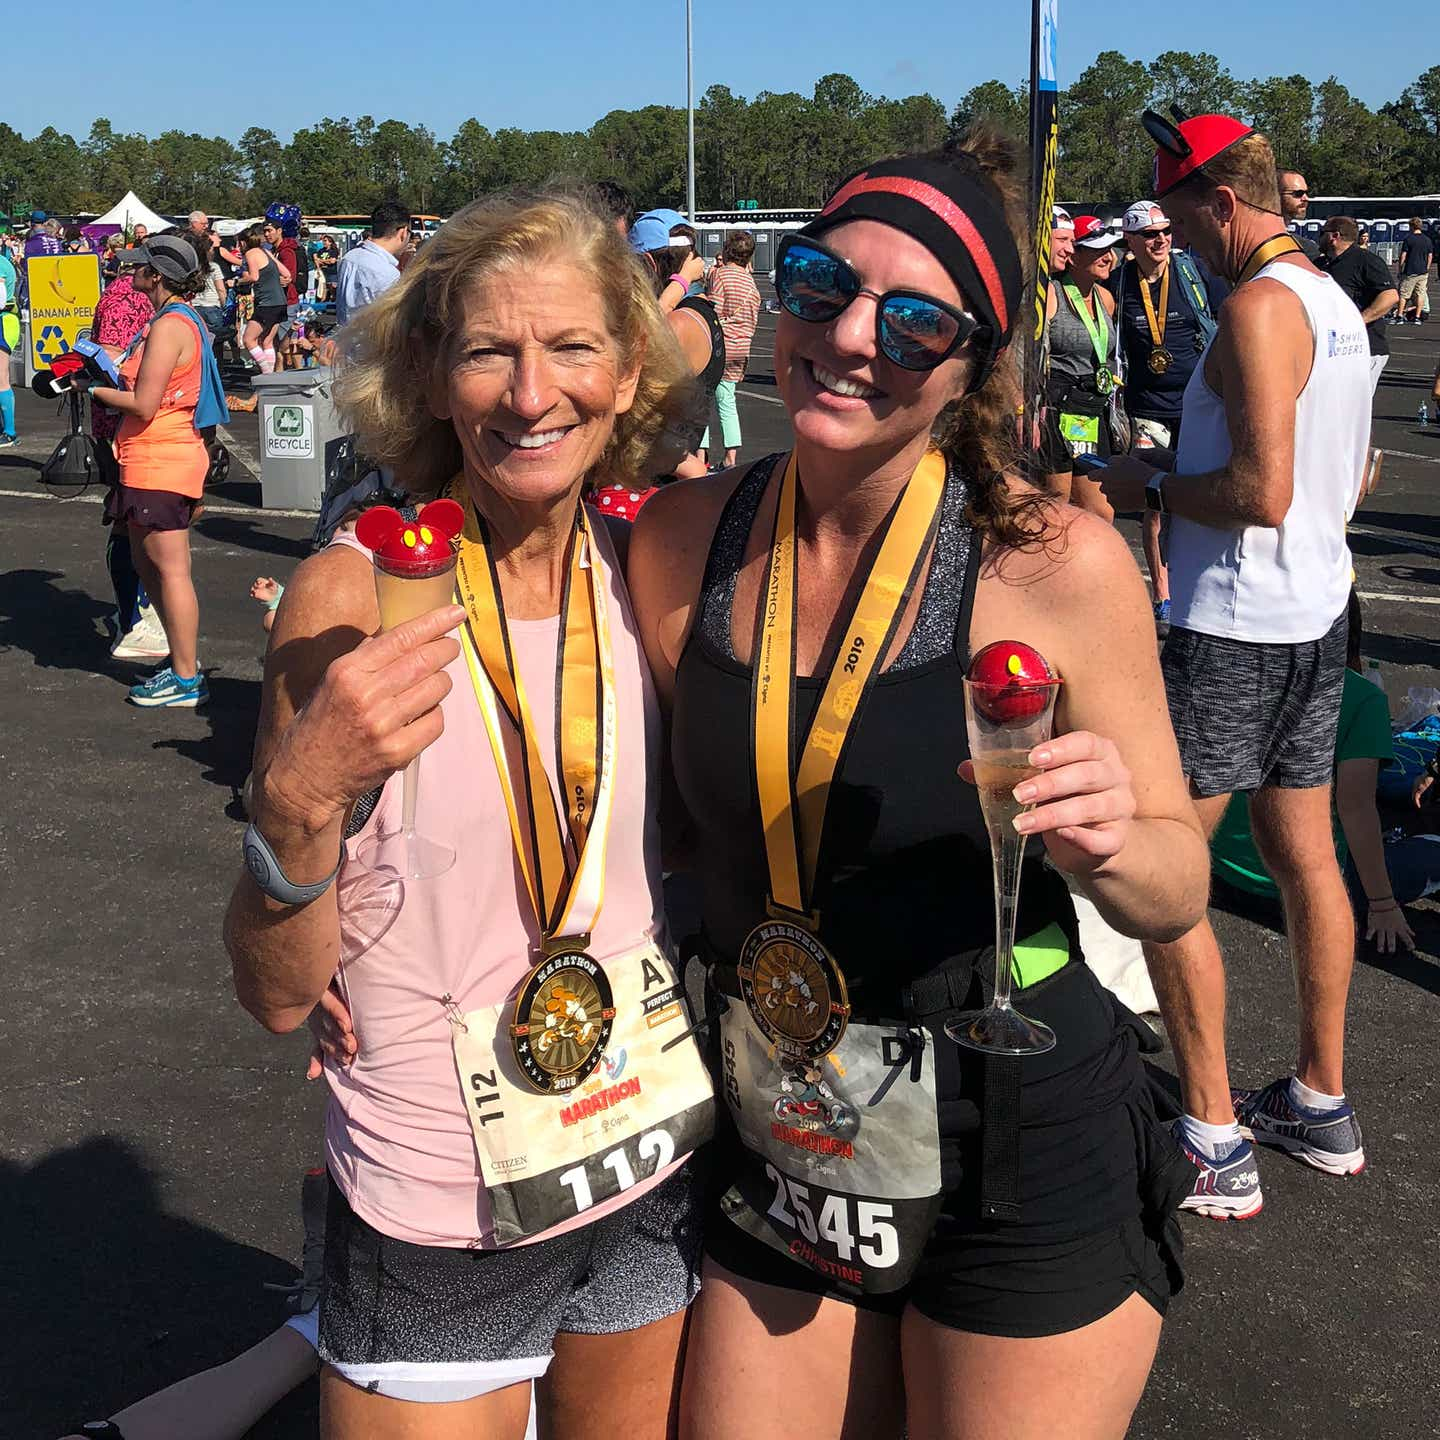 Co-author, Christine (right), wears a medal, black tank top and shorts while holding a Mickey drink with her mom (left).